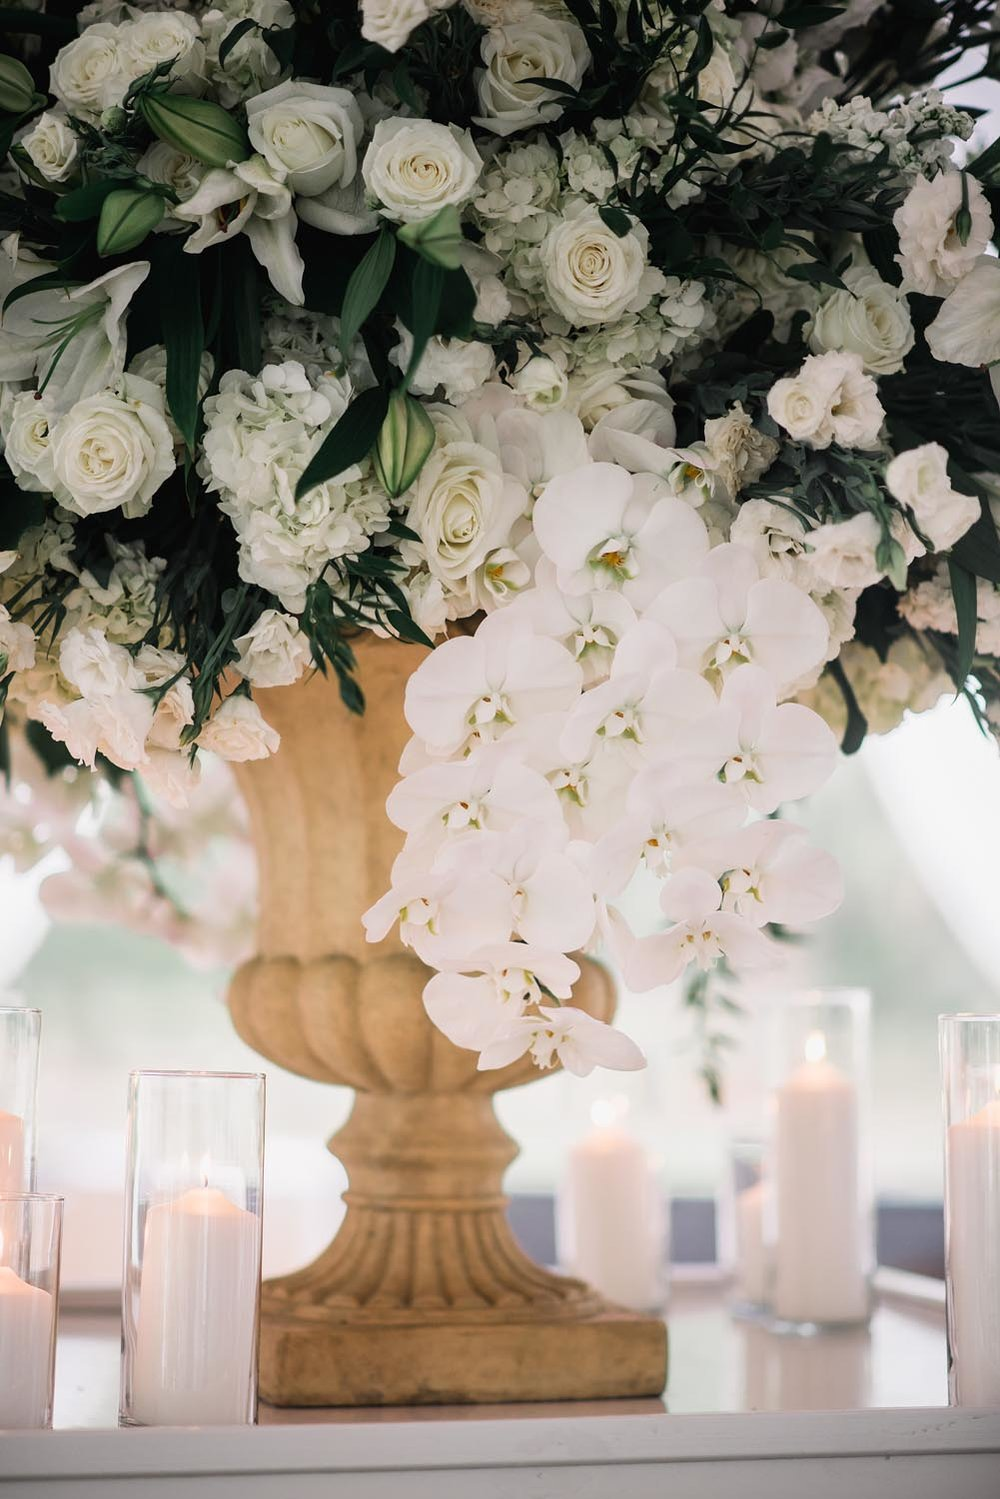 Large cream colored wedding floral centerpieces. Wedding planning and design by A Charleston Bride.